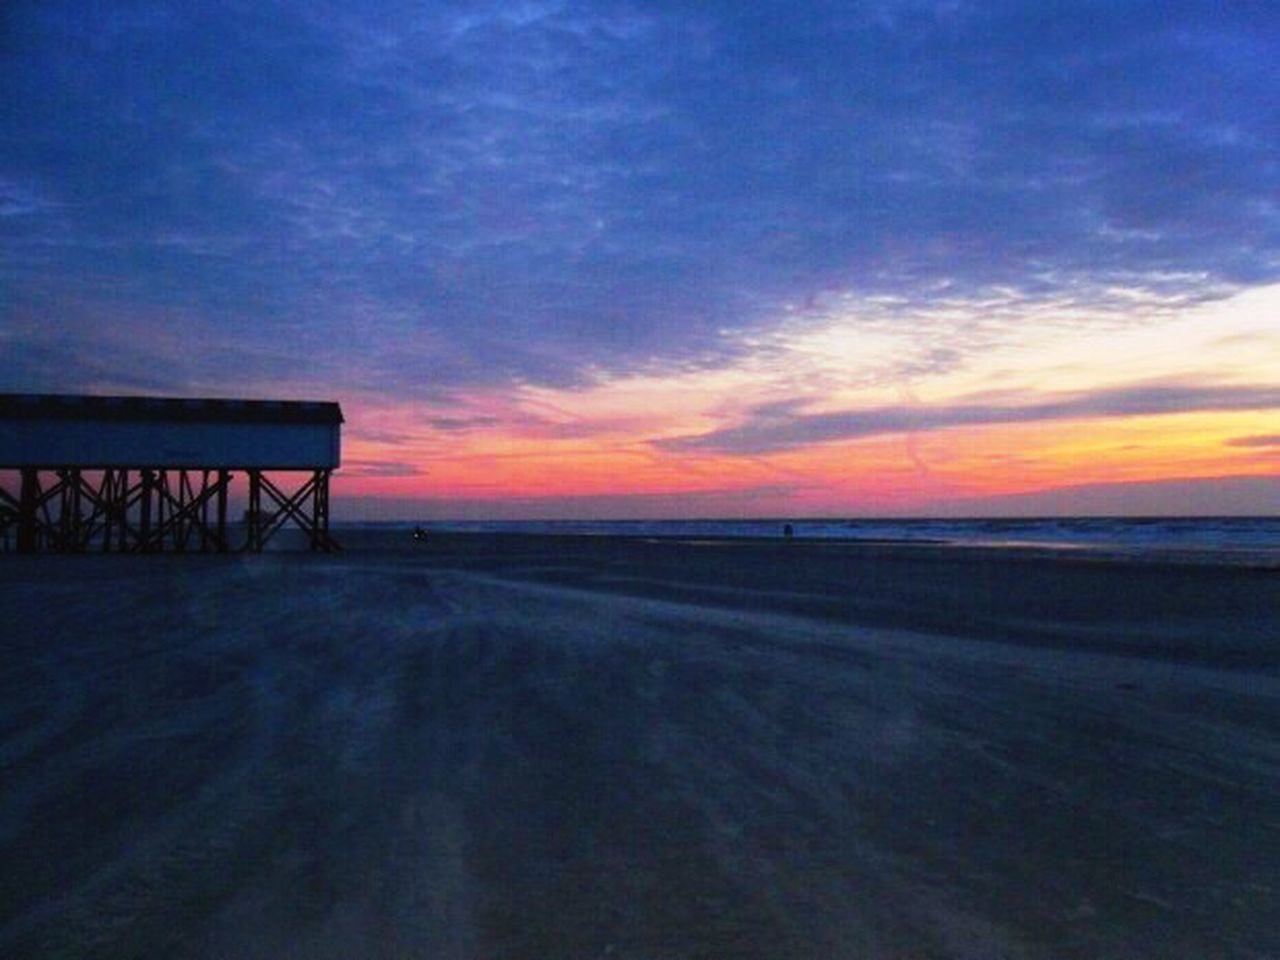 Sunset Scenics Tranquil Scene Sky Idyllic Beauty In Nature Blue Water Dramatic Sky Nature Sea Cloud - Sky Calm Majestic Outdoors St. Peter Ording Eiderstedt Nordfriesland Northsea Nordseeküste Germany